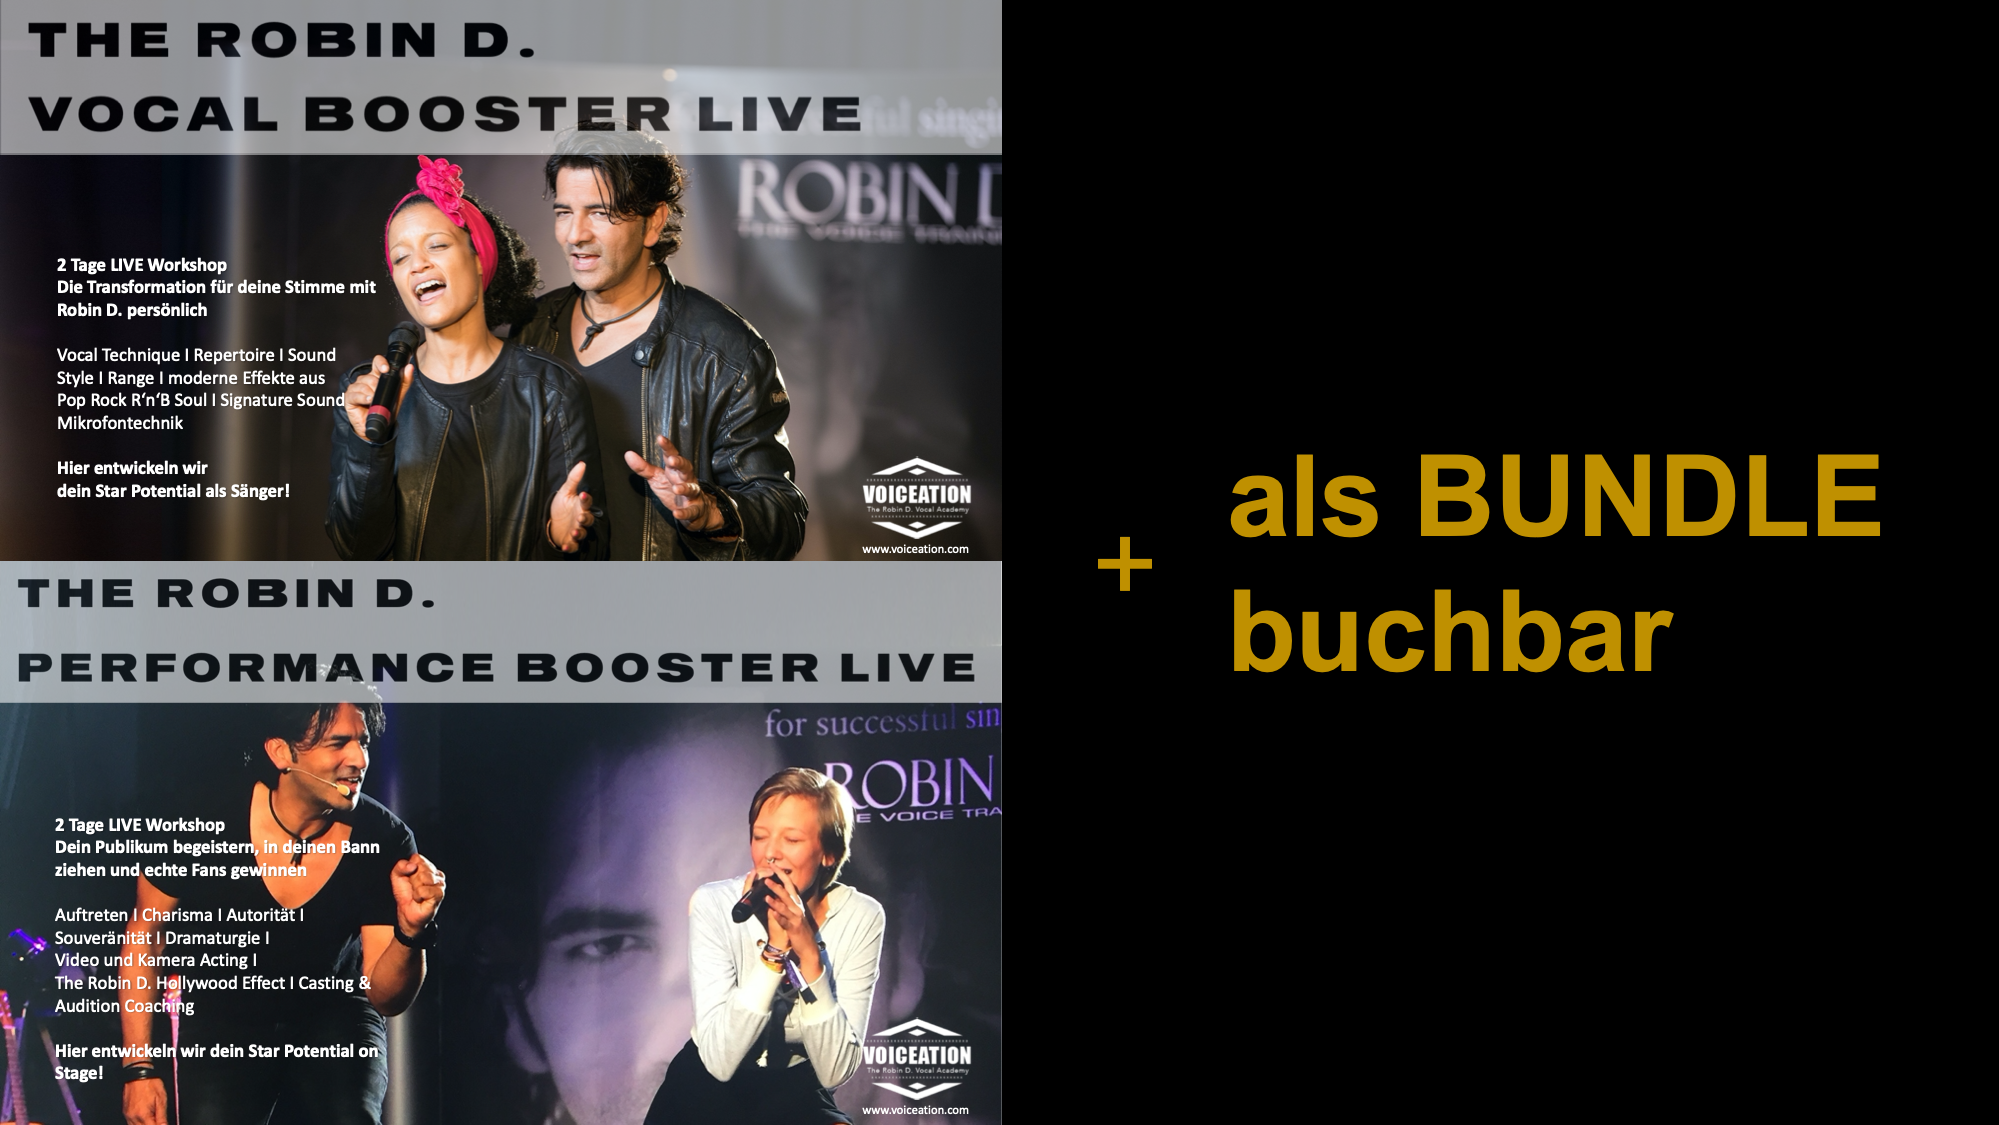 Vocal und Performance Poster Live